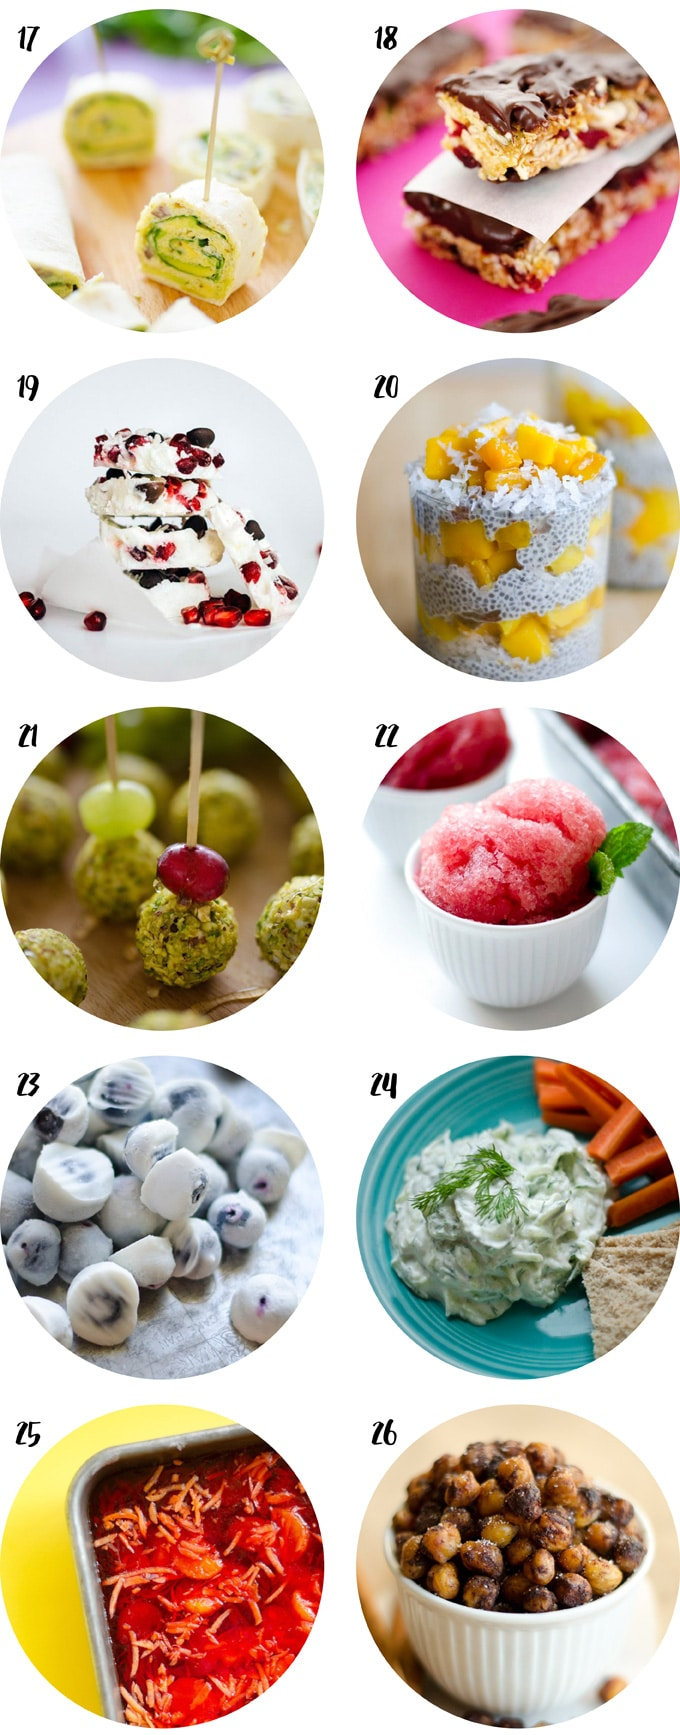 Snacks. 26 Healthy Dorm Room Recipes Part 61